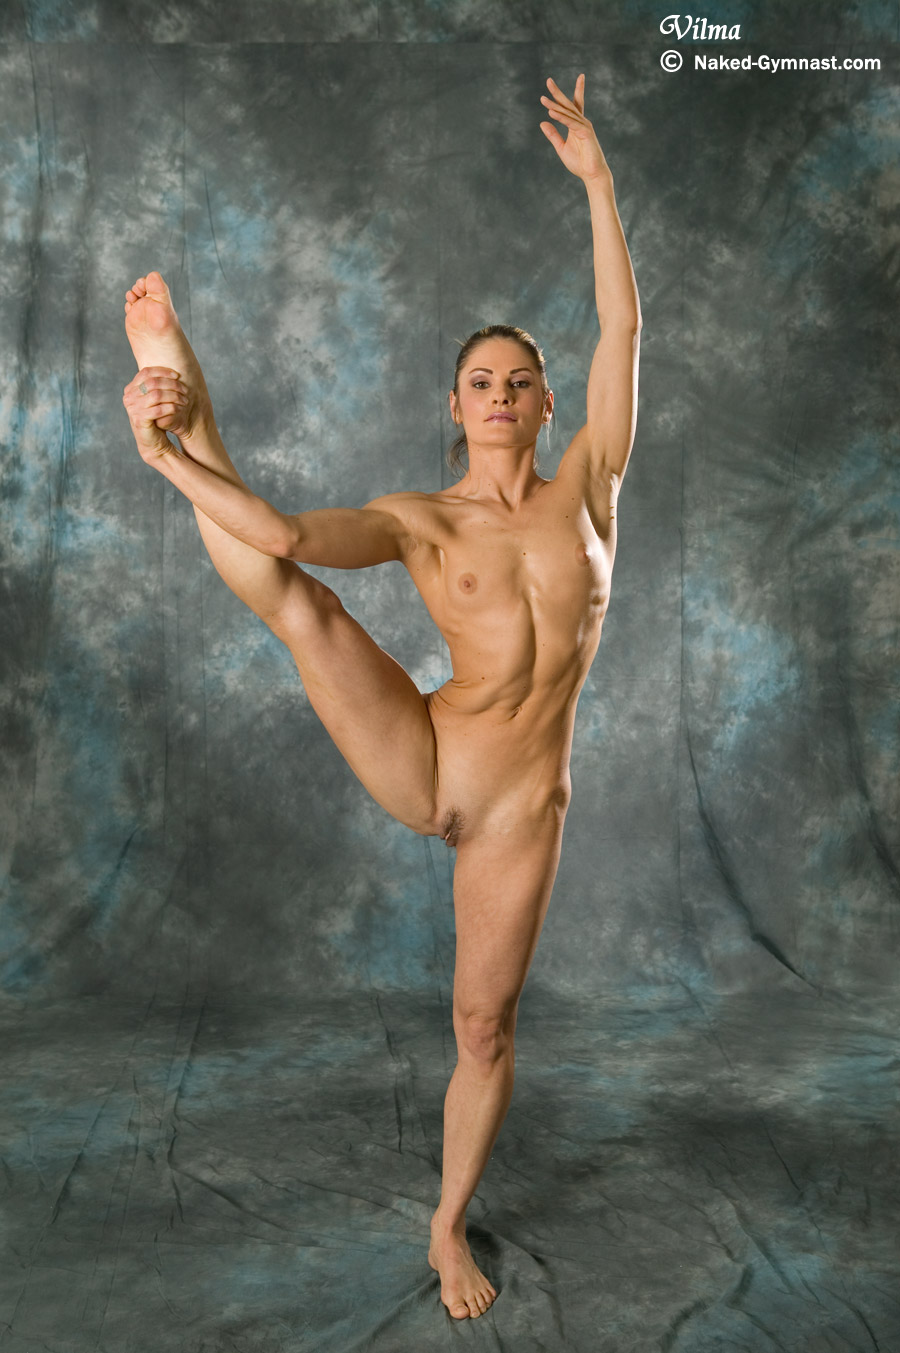 Naked flexible gymnasts